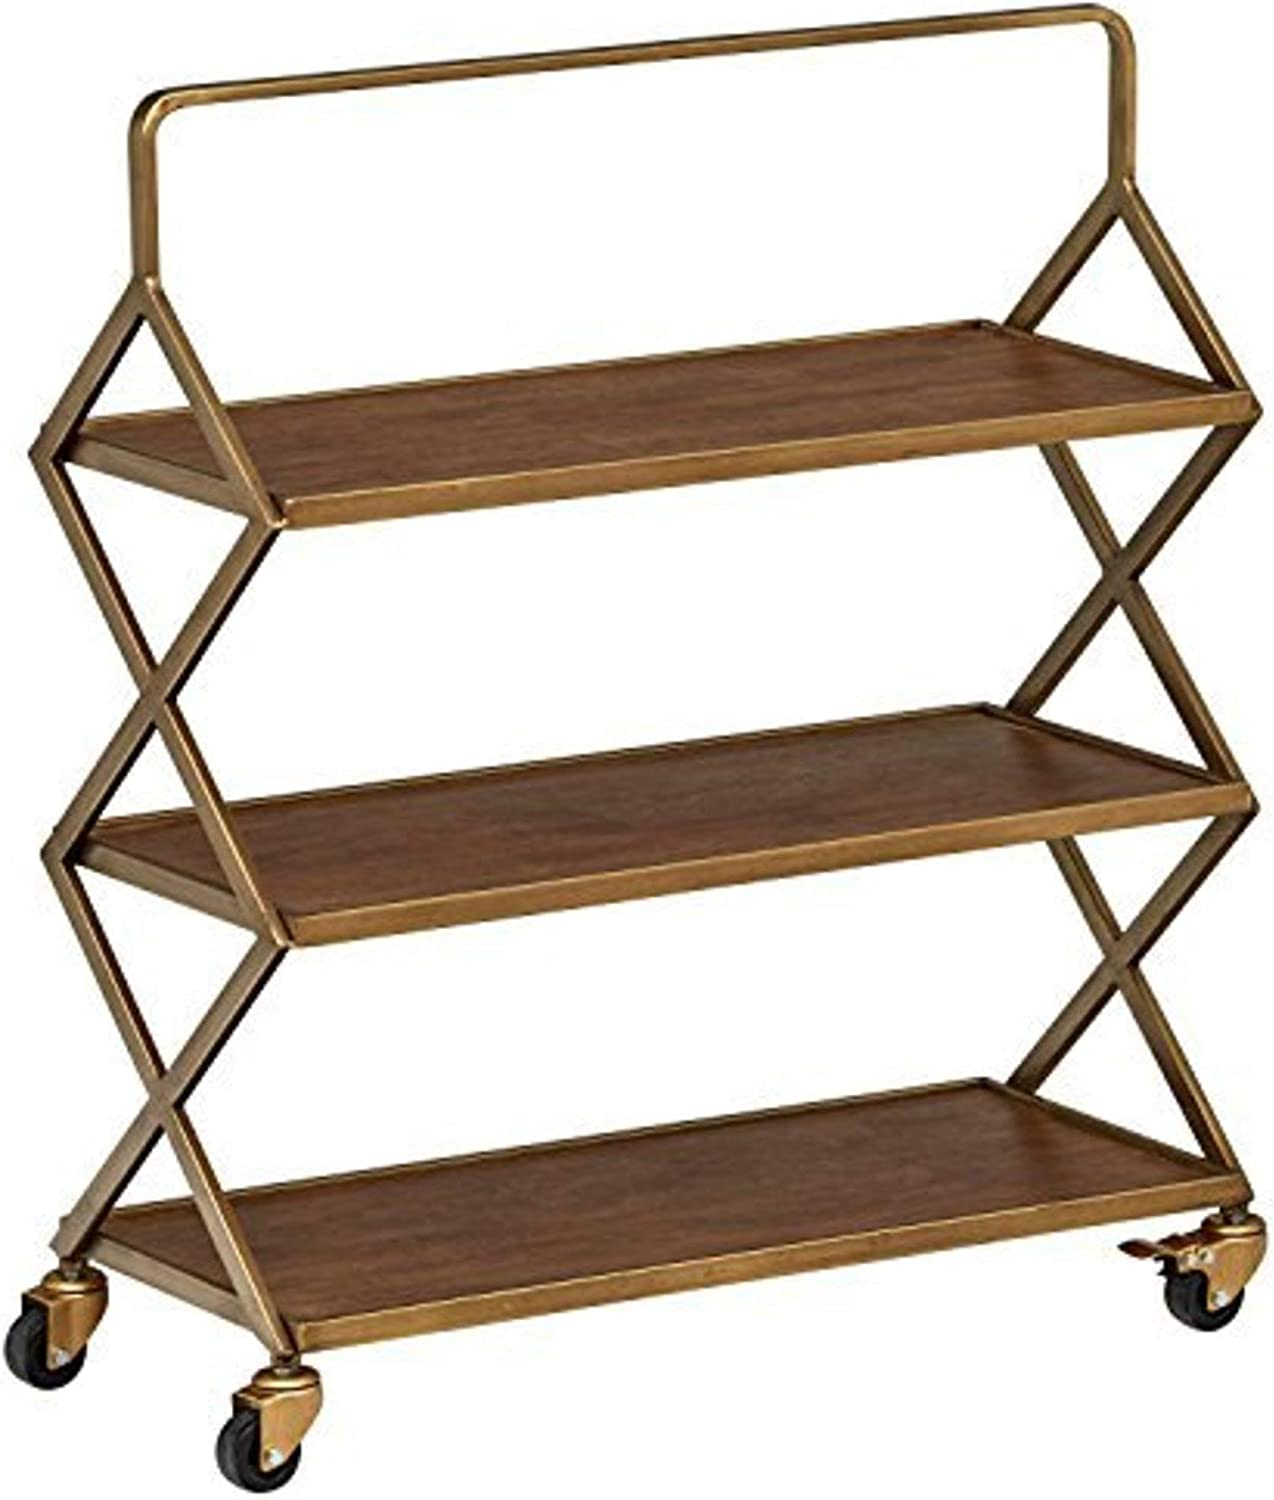 Amazon Brand – Rivet Mid-Century Modern Wood and Metal 3-Tiered Kitchen Bar Cart with Wheels, 27.9